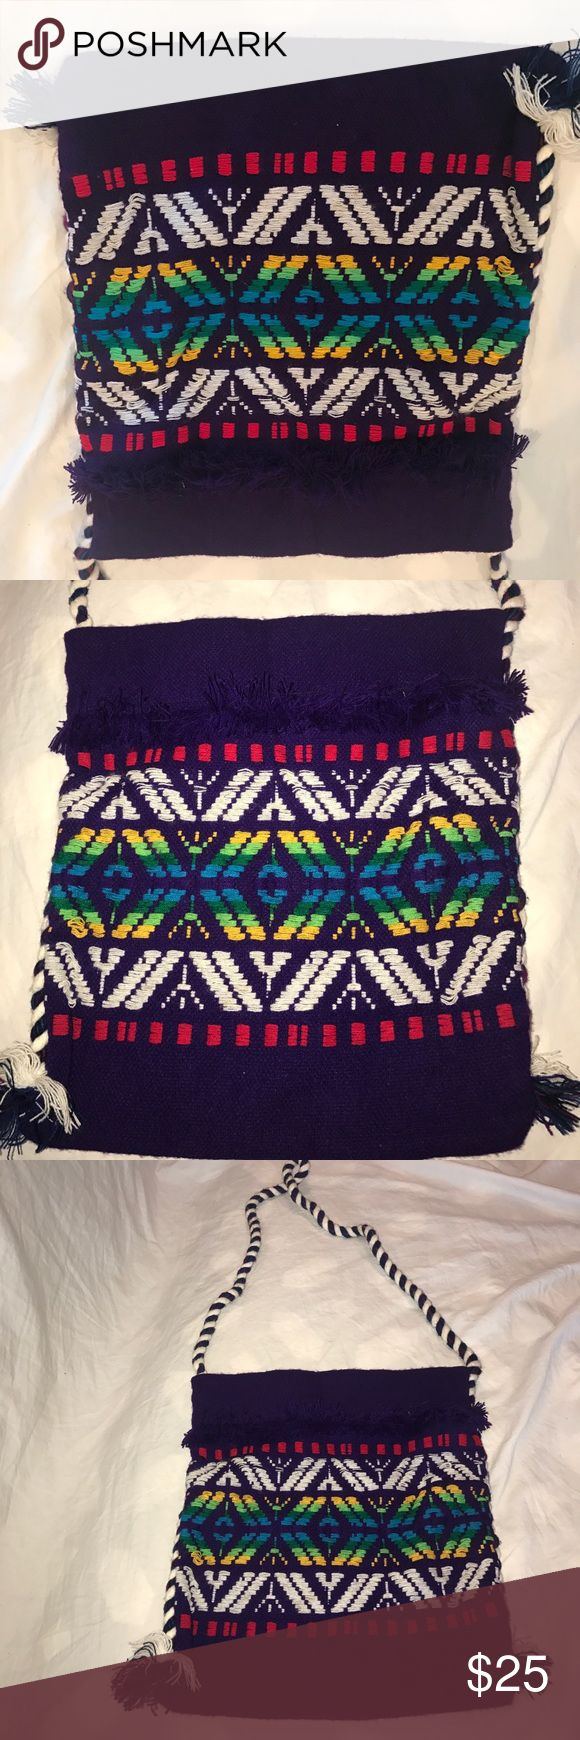 Vintage Hippie Aztec Indian Tote Bag Embroidered colorful bag on a purple backdrop. It has an open pocket. It measures about 13 inches in height, 11 inches in length, and has a 19 inch strap drop. Bags Totes